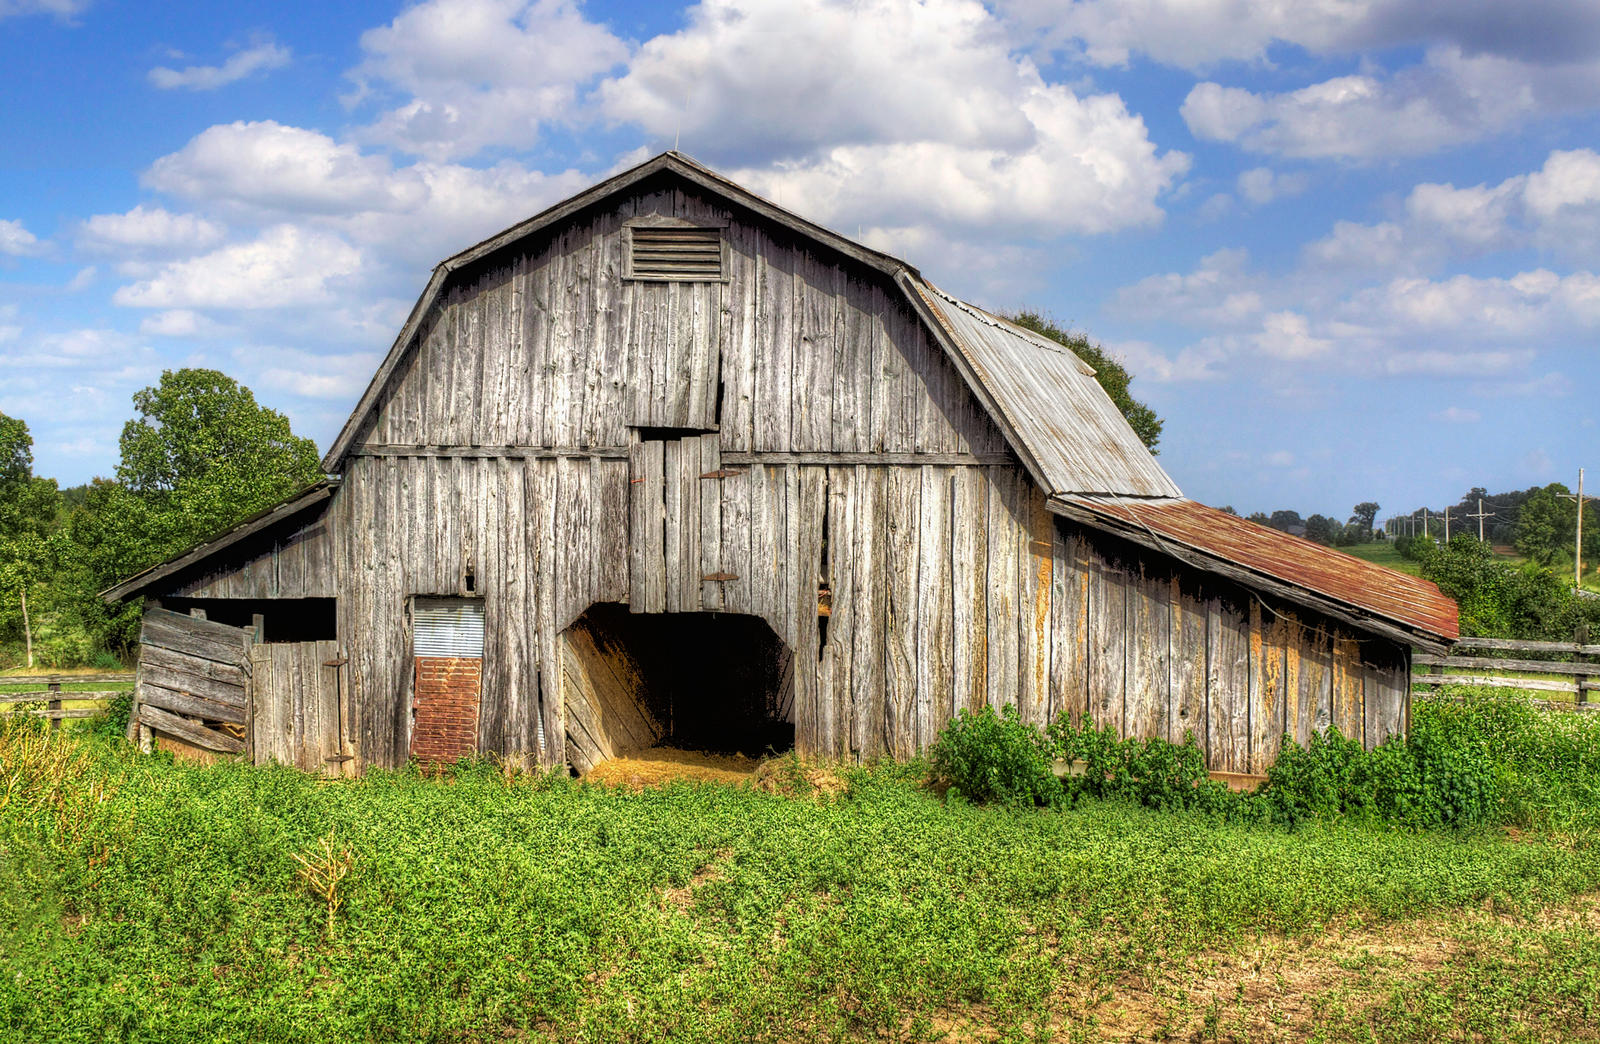 ... Old Barn II HDR by joelht74